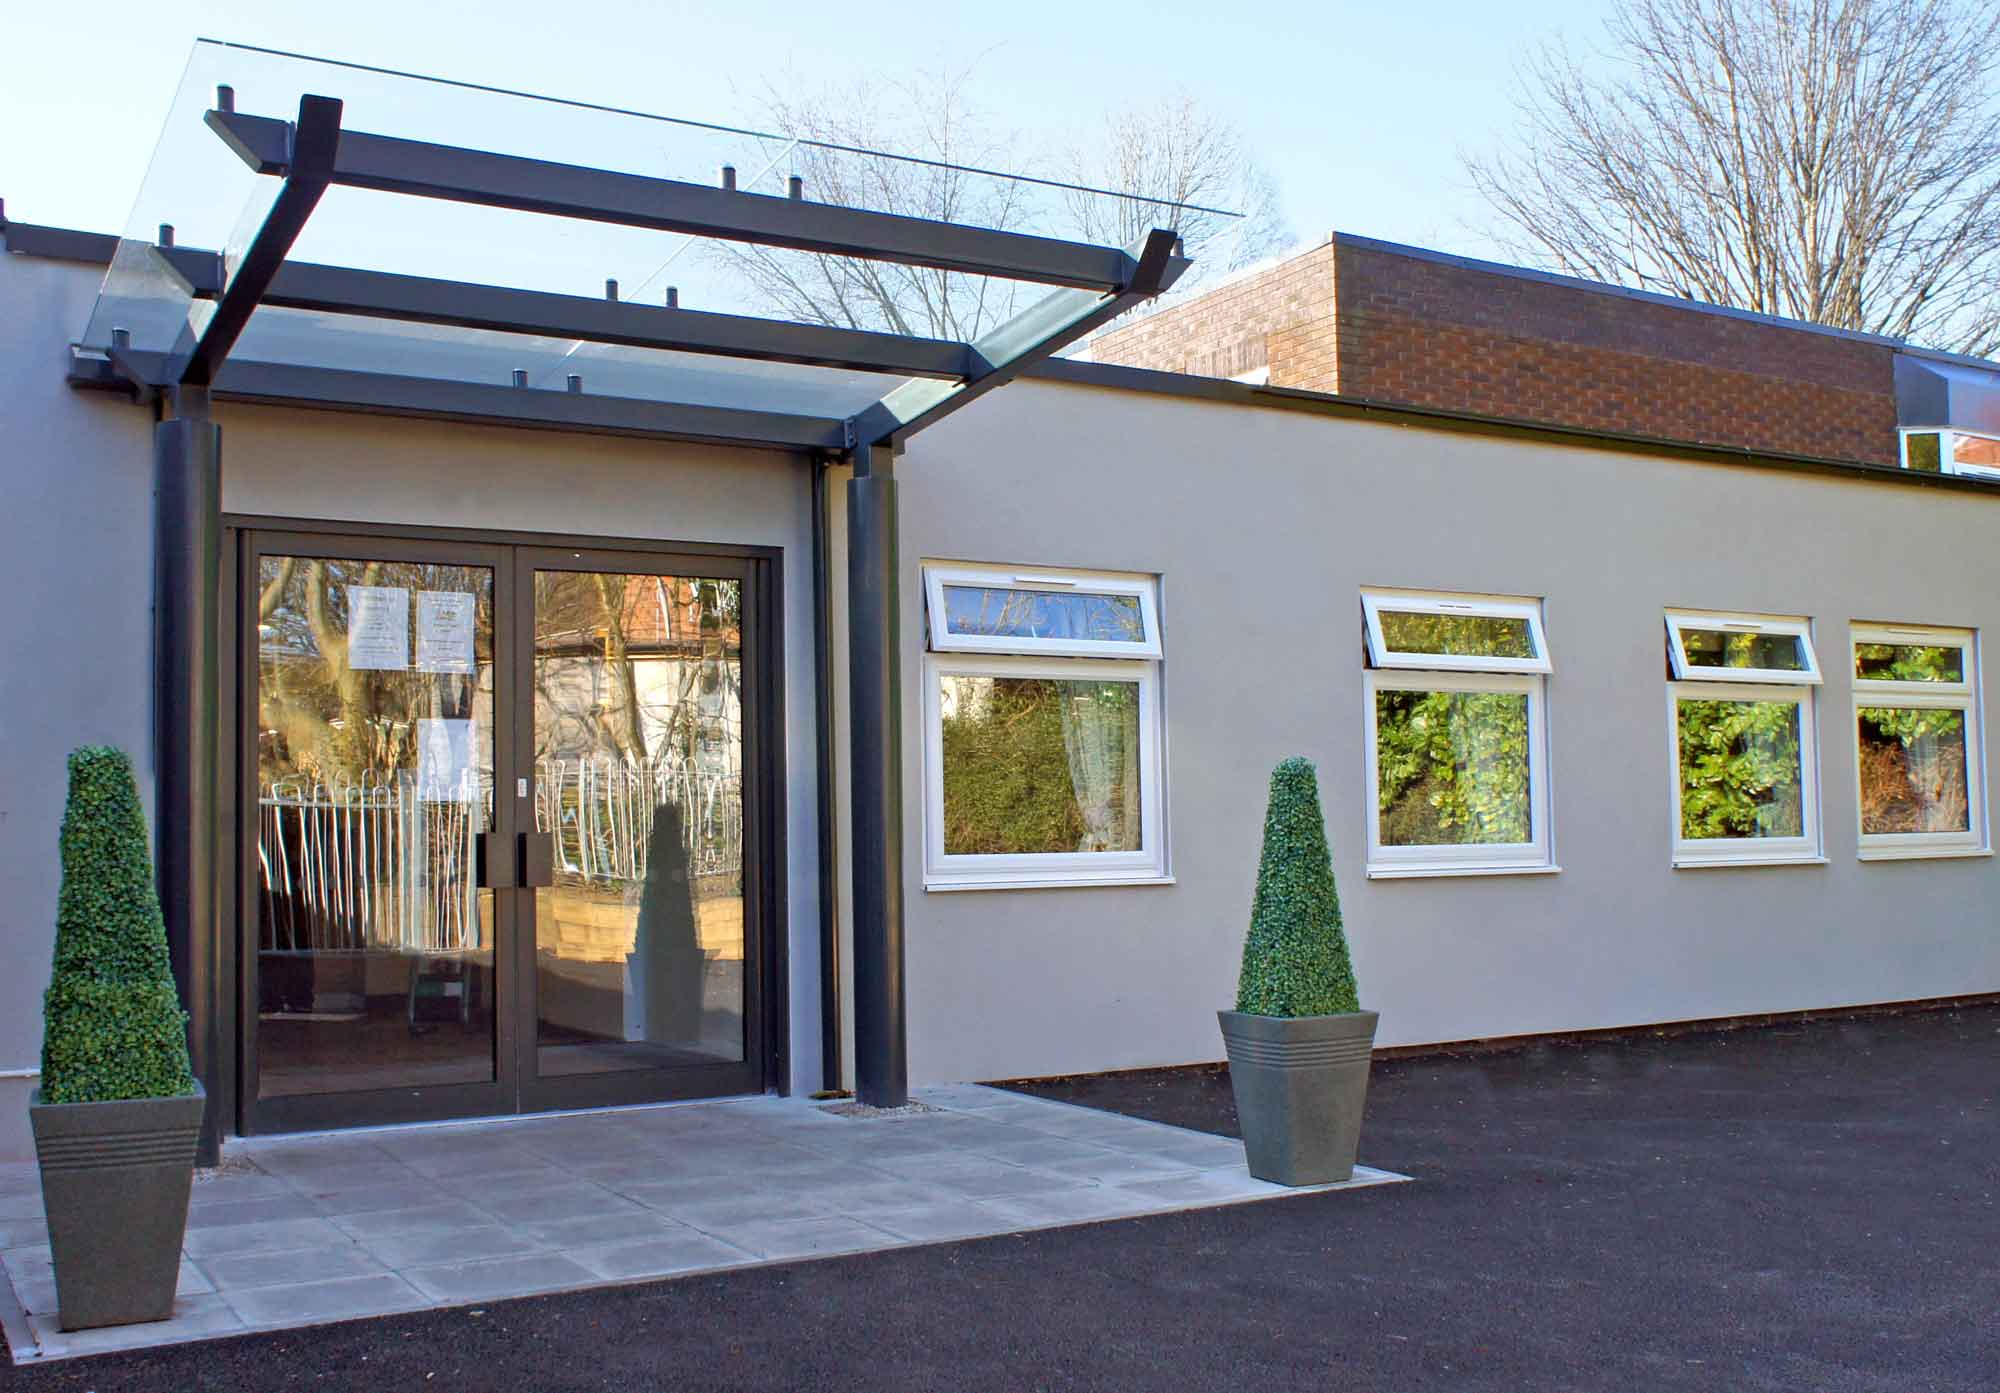 glass canopy entrance to care home